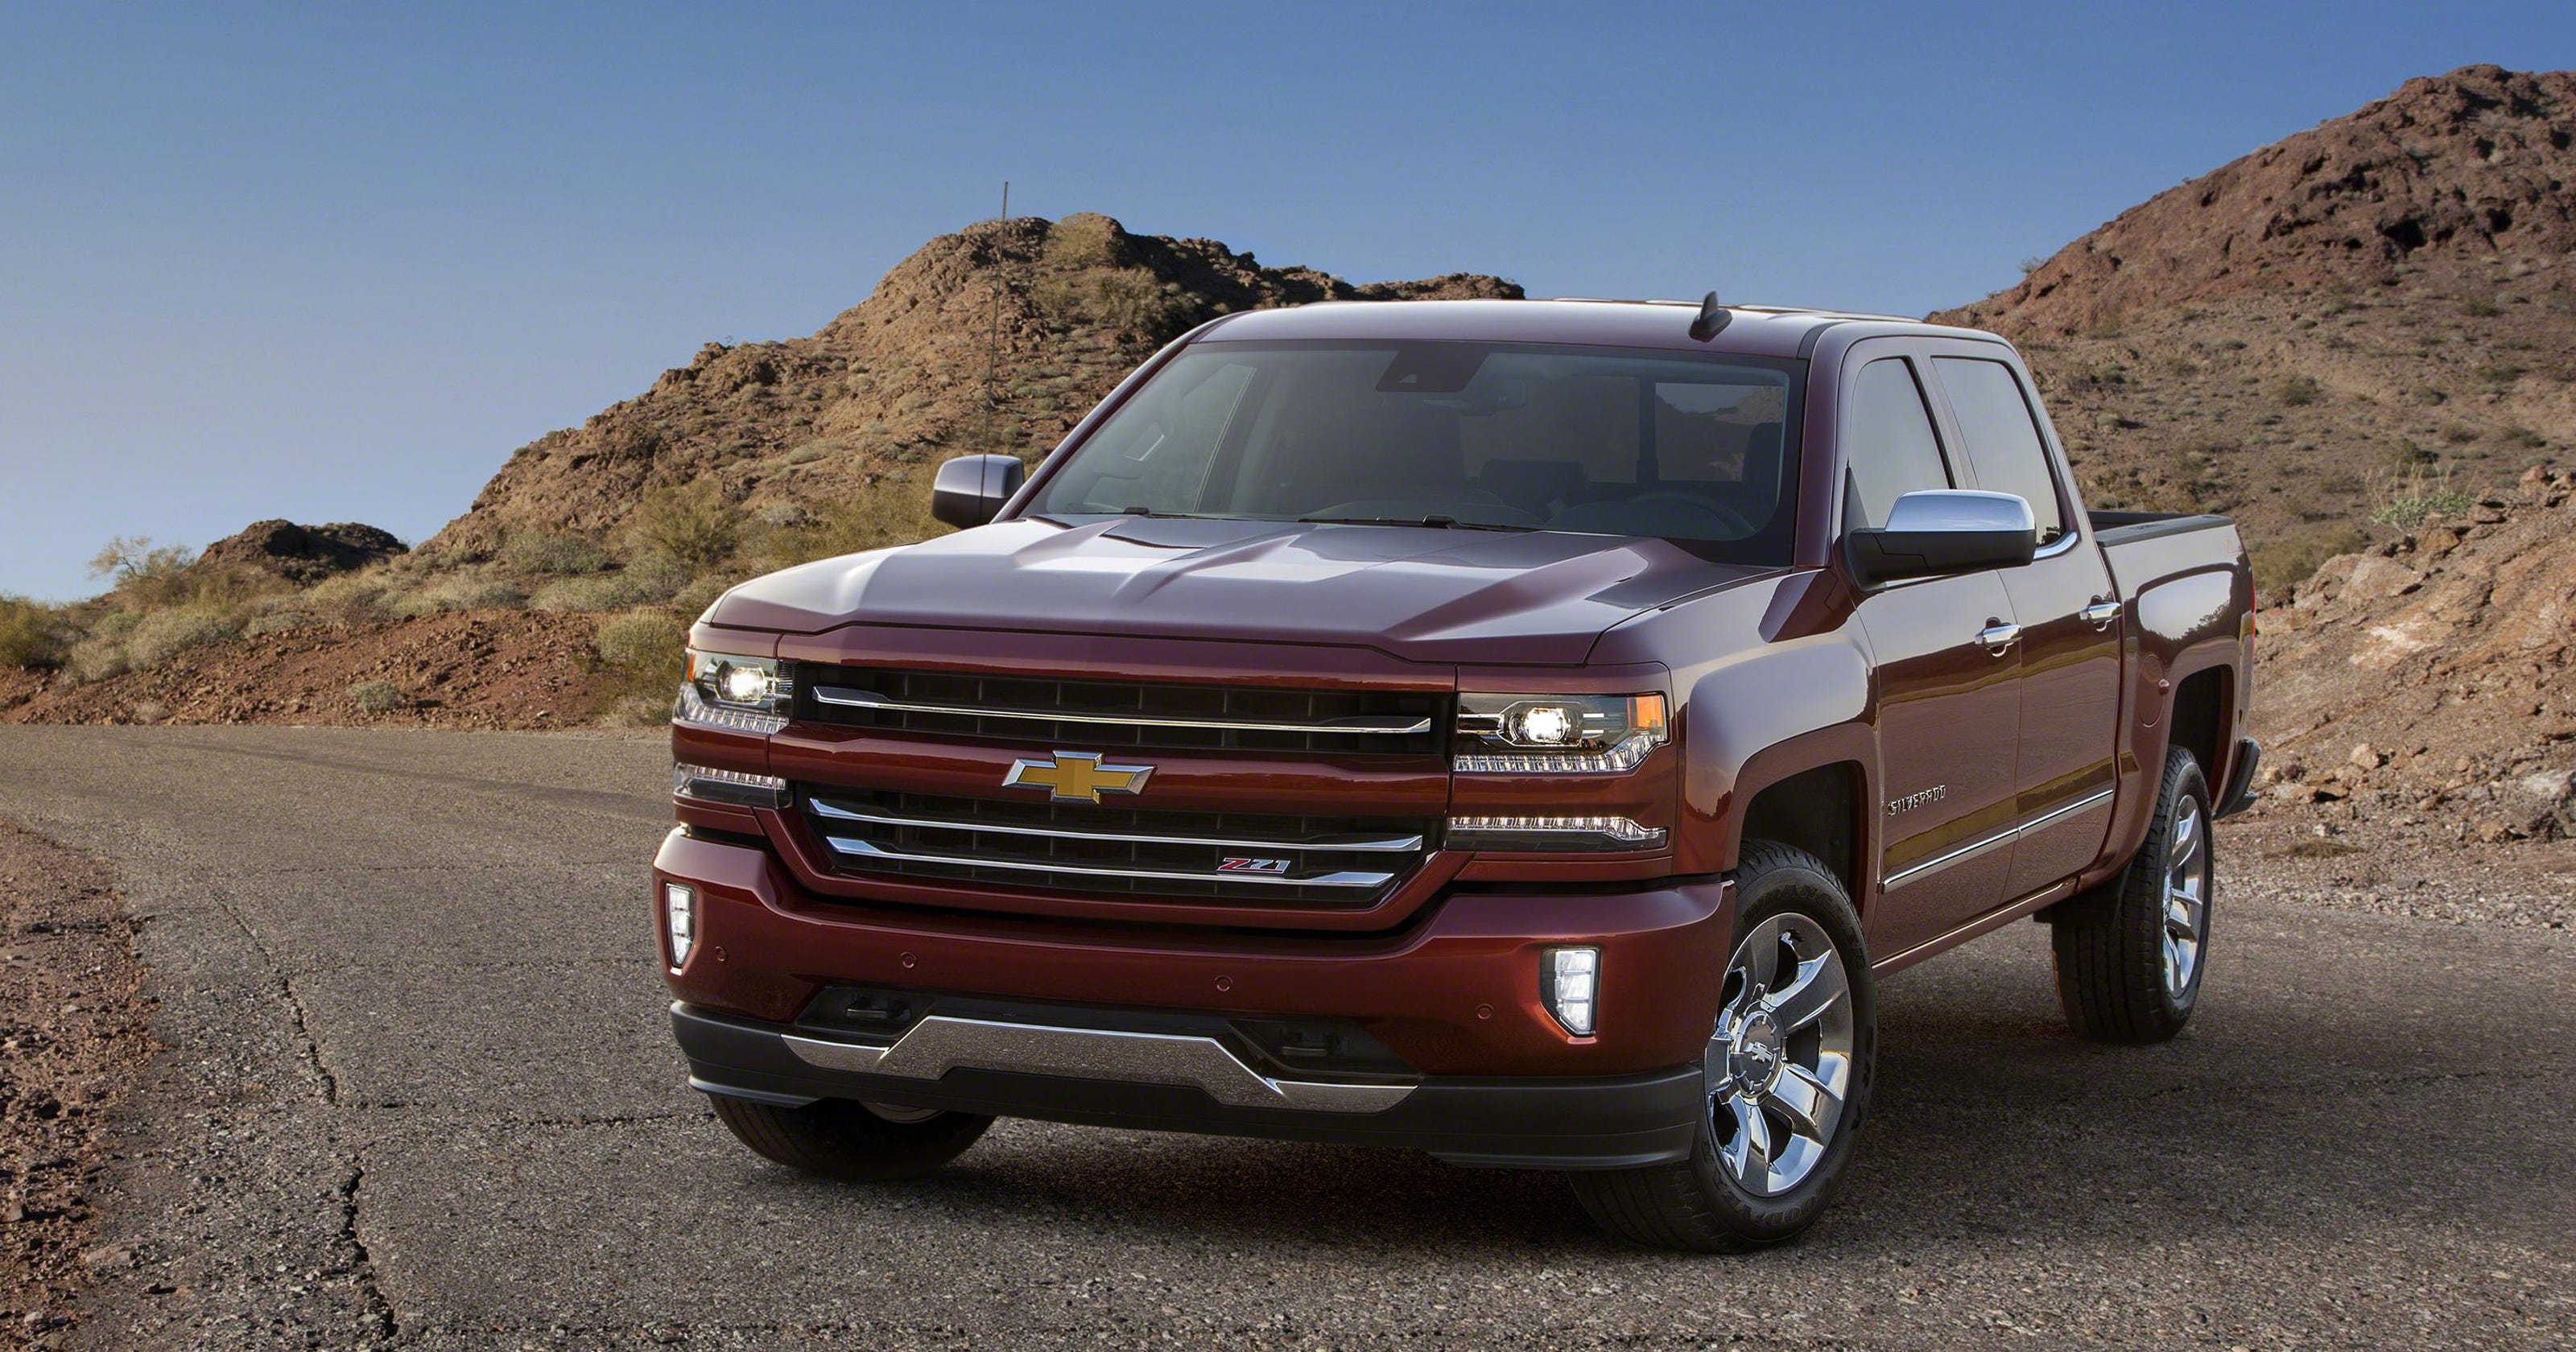 Gm Recalls Some 2016 Trucks For Control Arm Defect